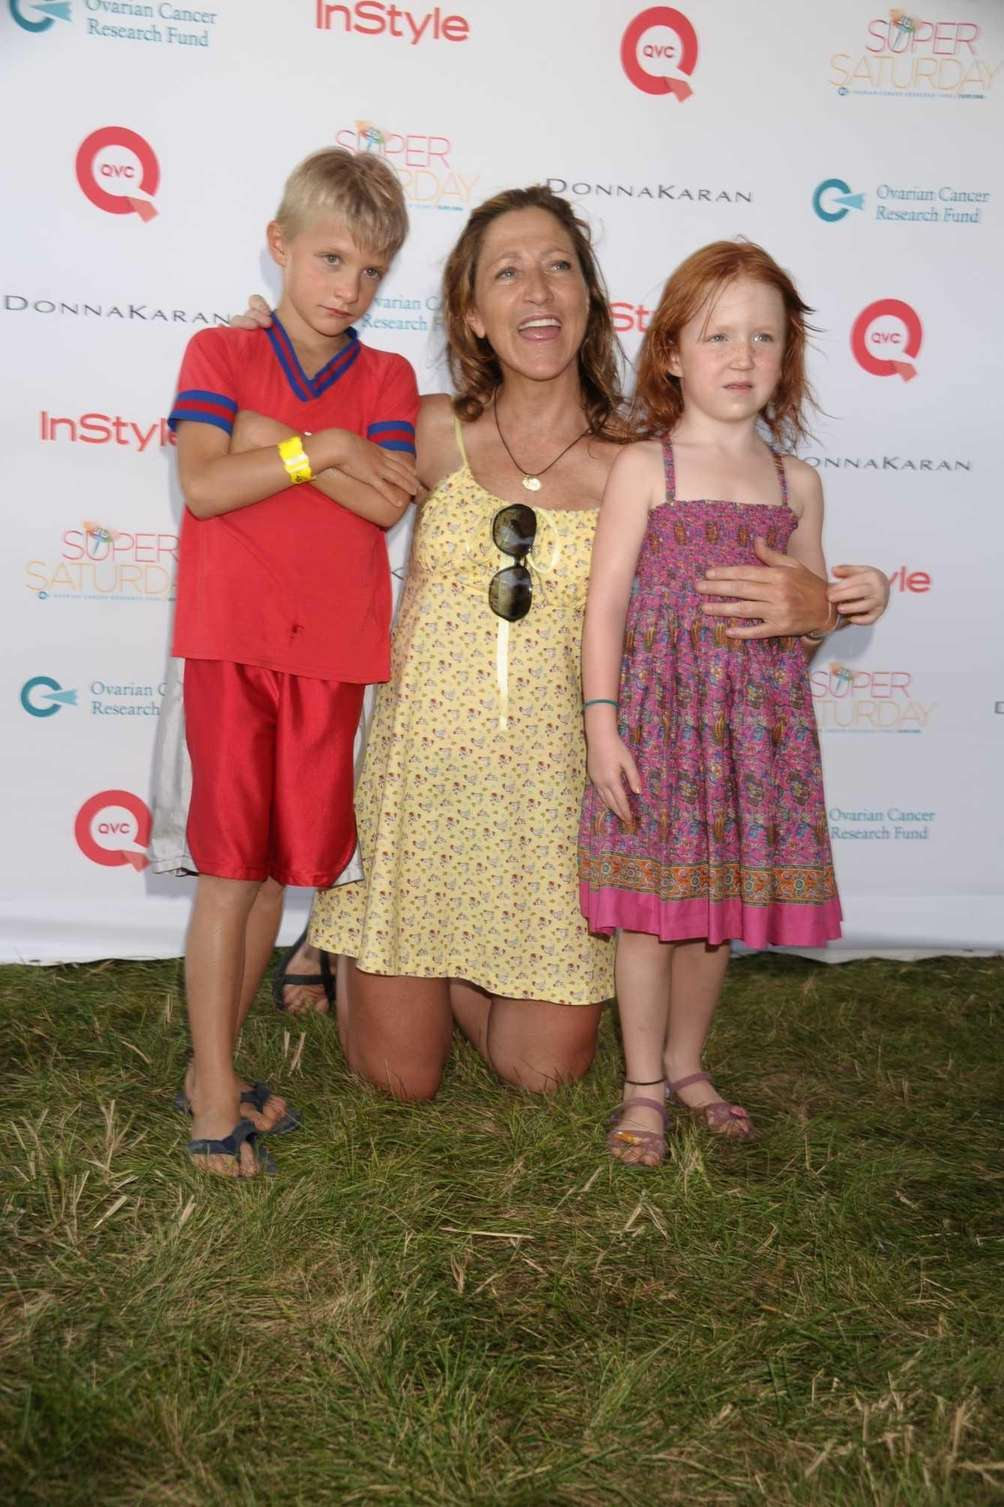 As a single mother, Edie Falco adopted Anderson